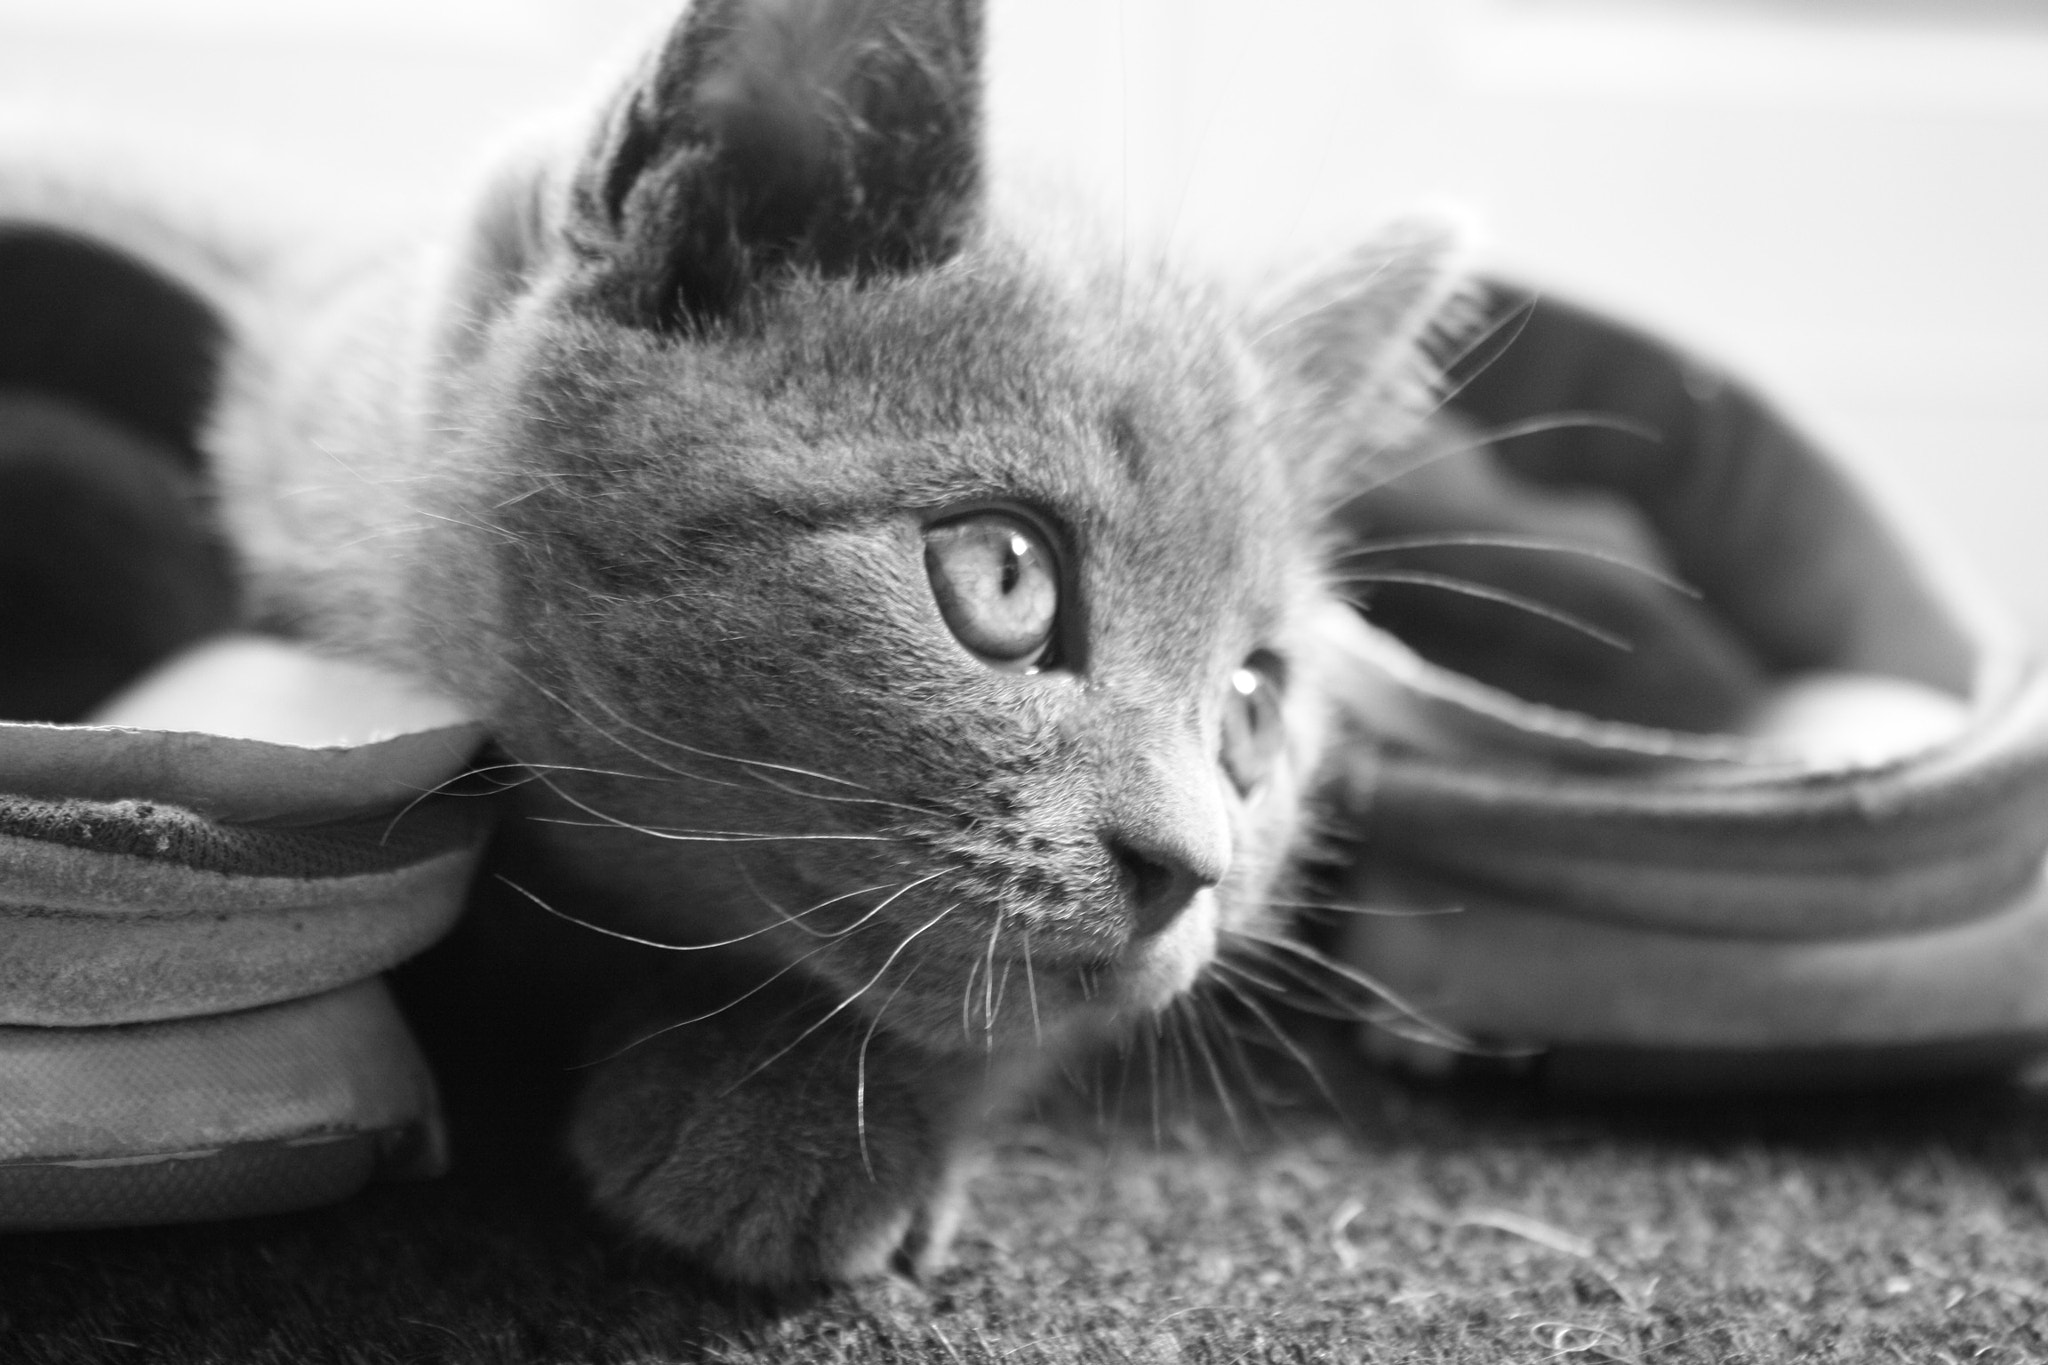 Photograph Its my shoe now by Rose Smith on 500px